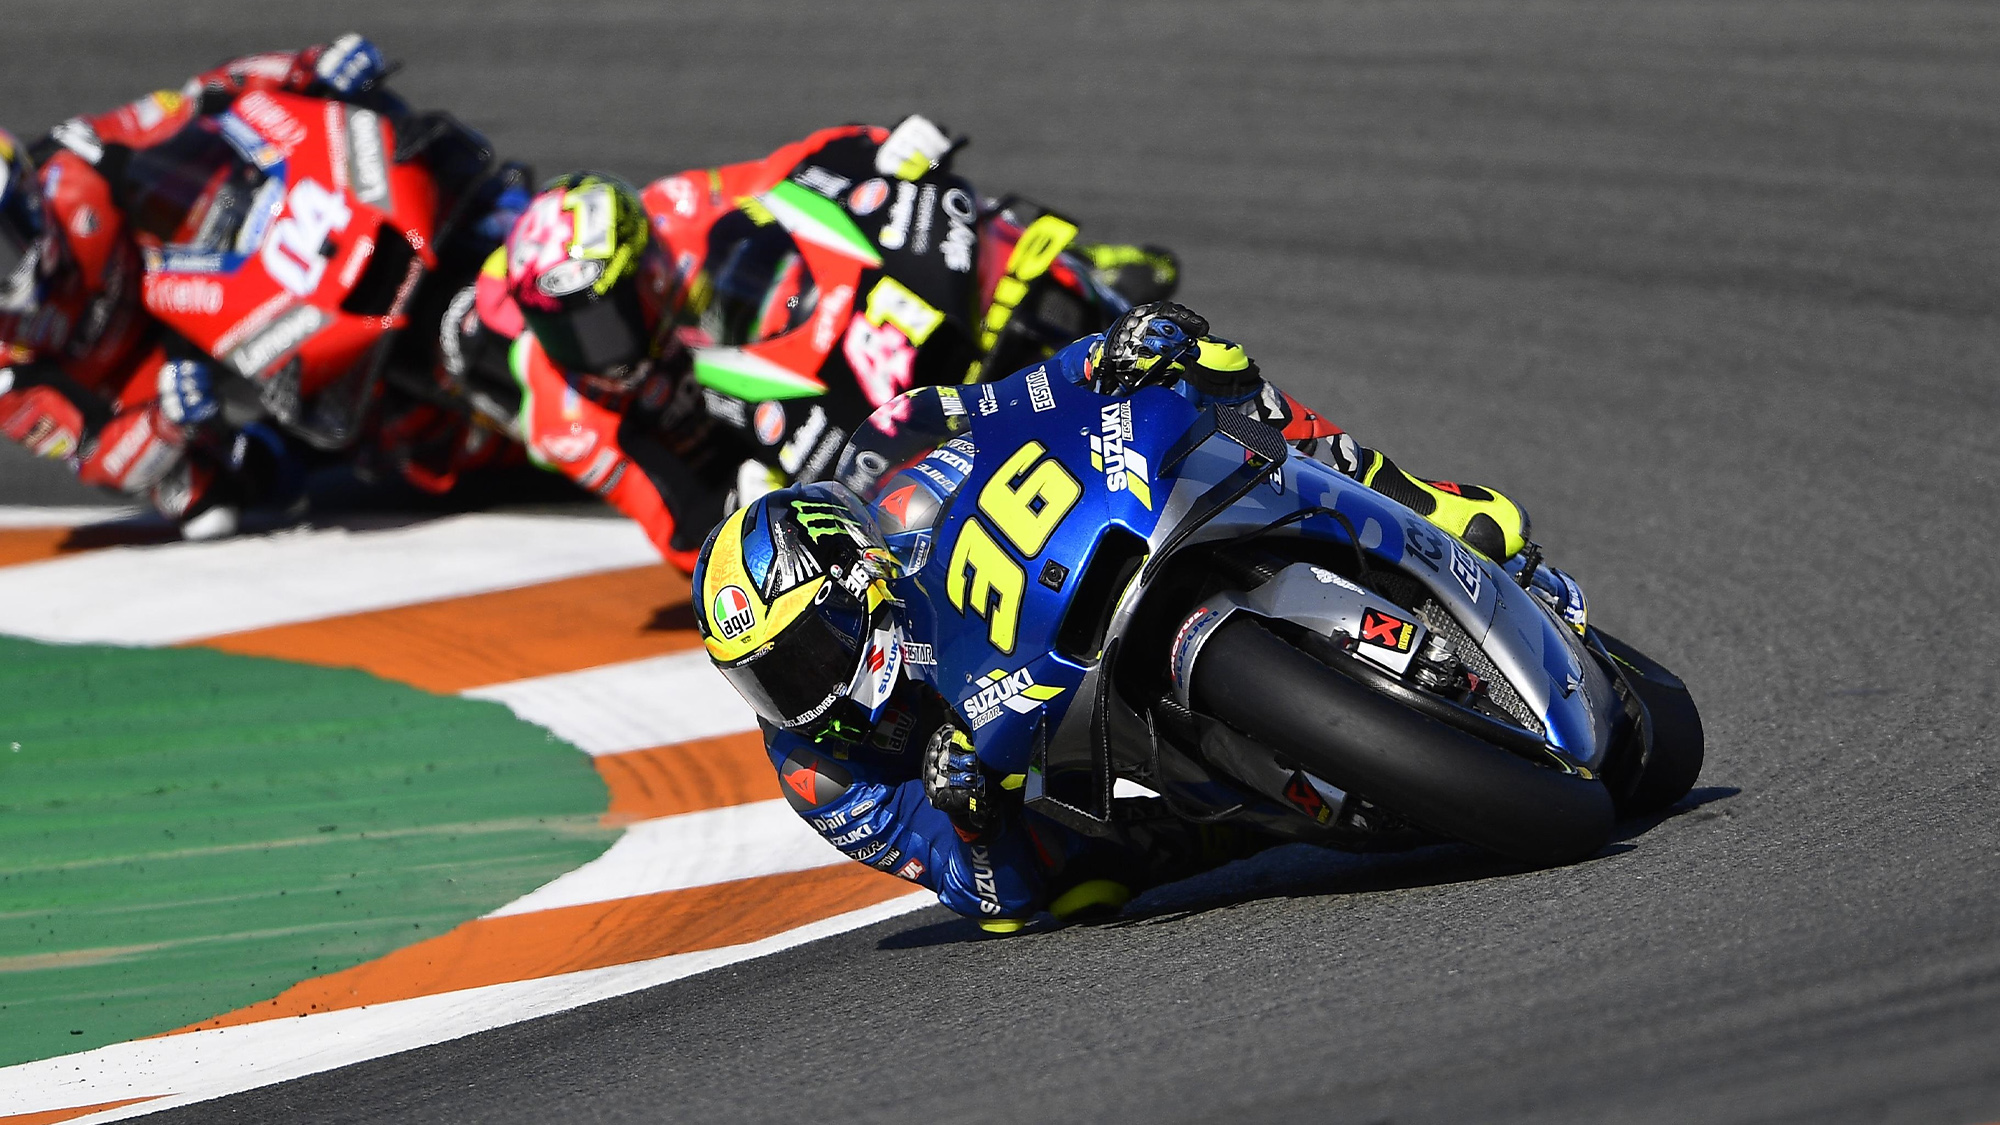 Joan Mir races to seventh place and his first MotoGP championship in the Valencia Grand Prix